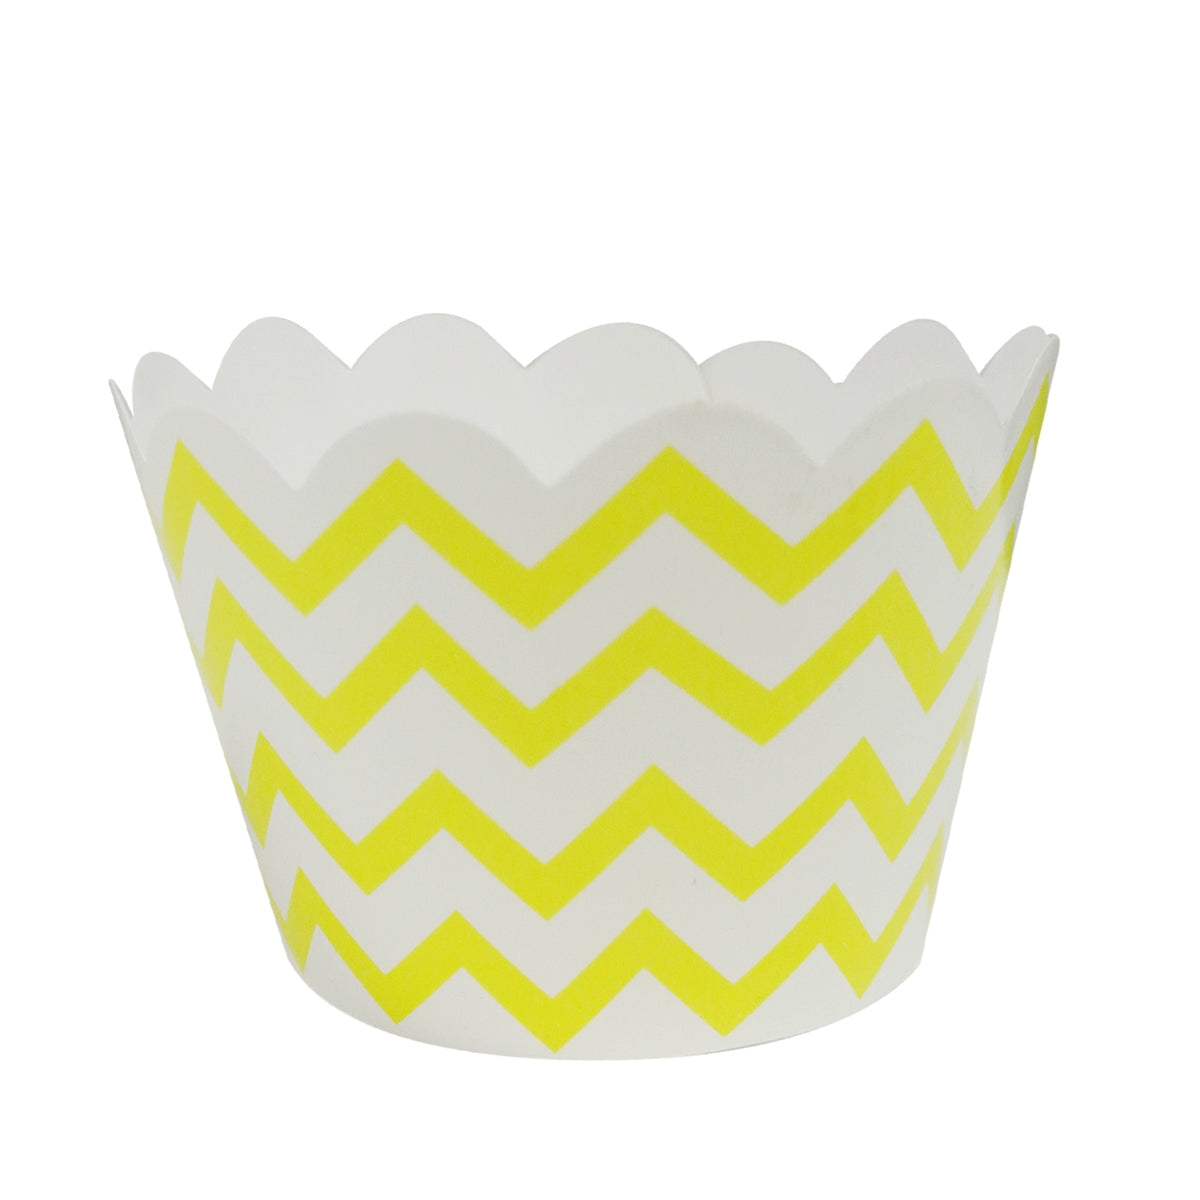 Wrapables Standard Size Chevron Cupcake Wrappers